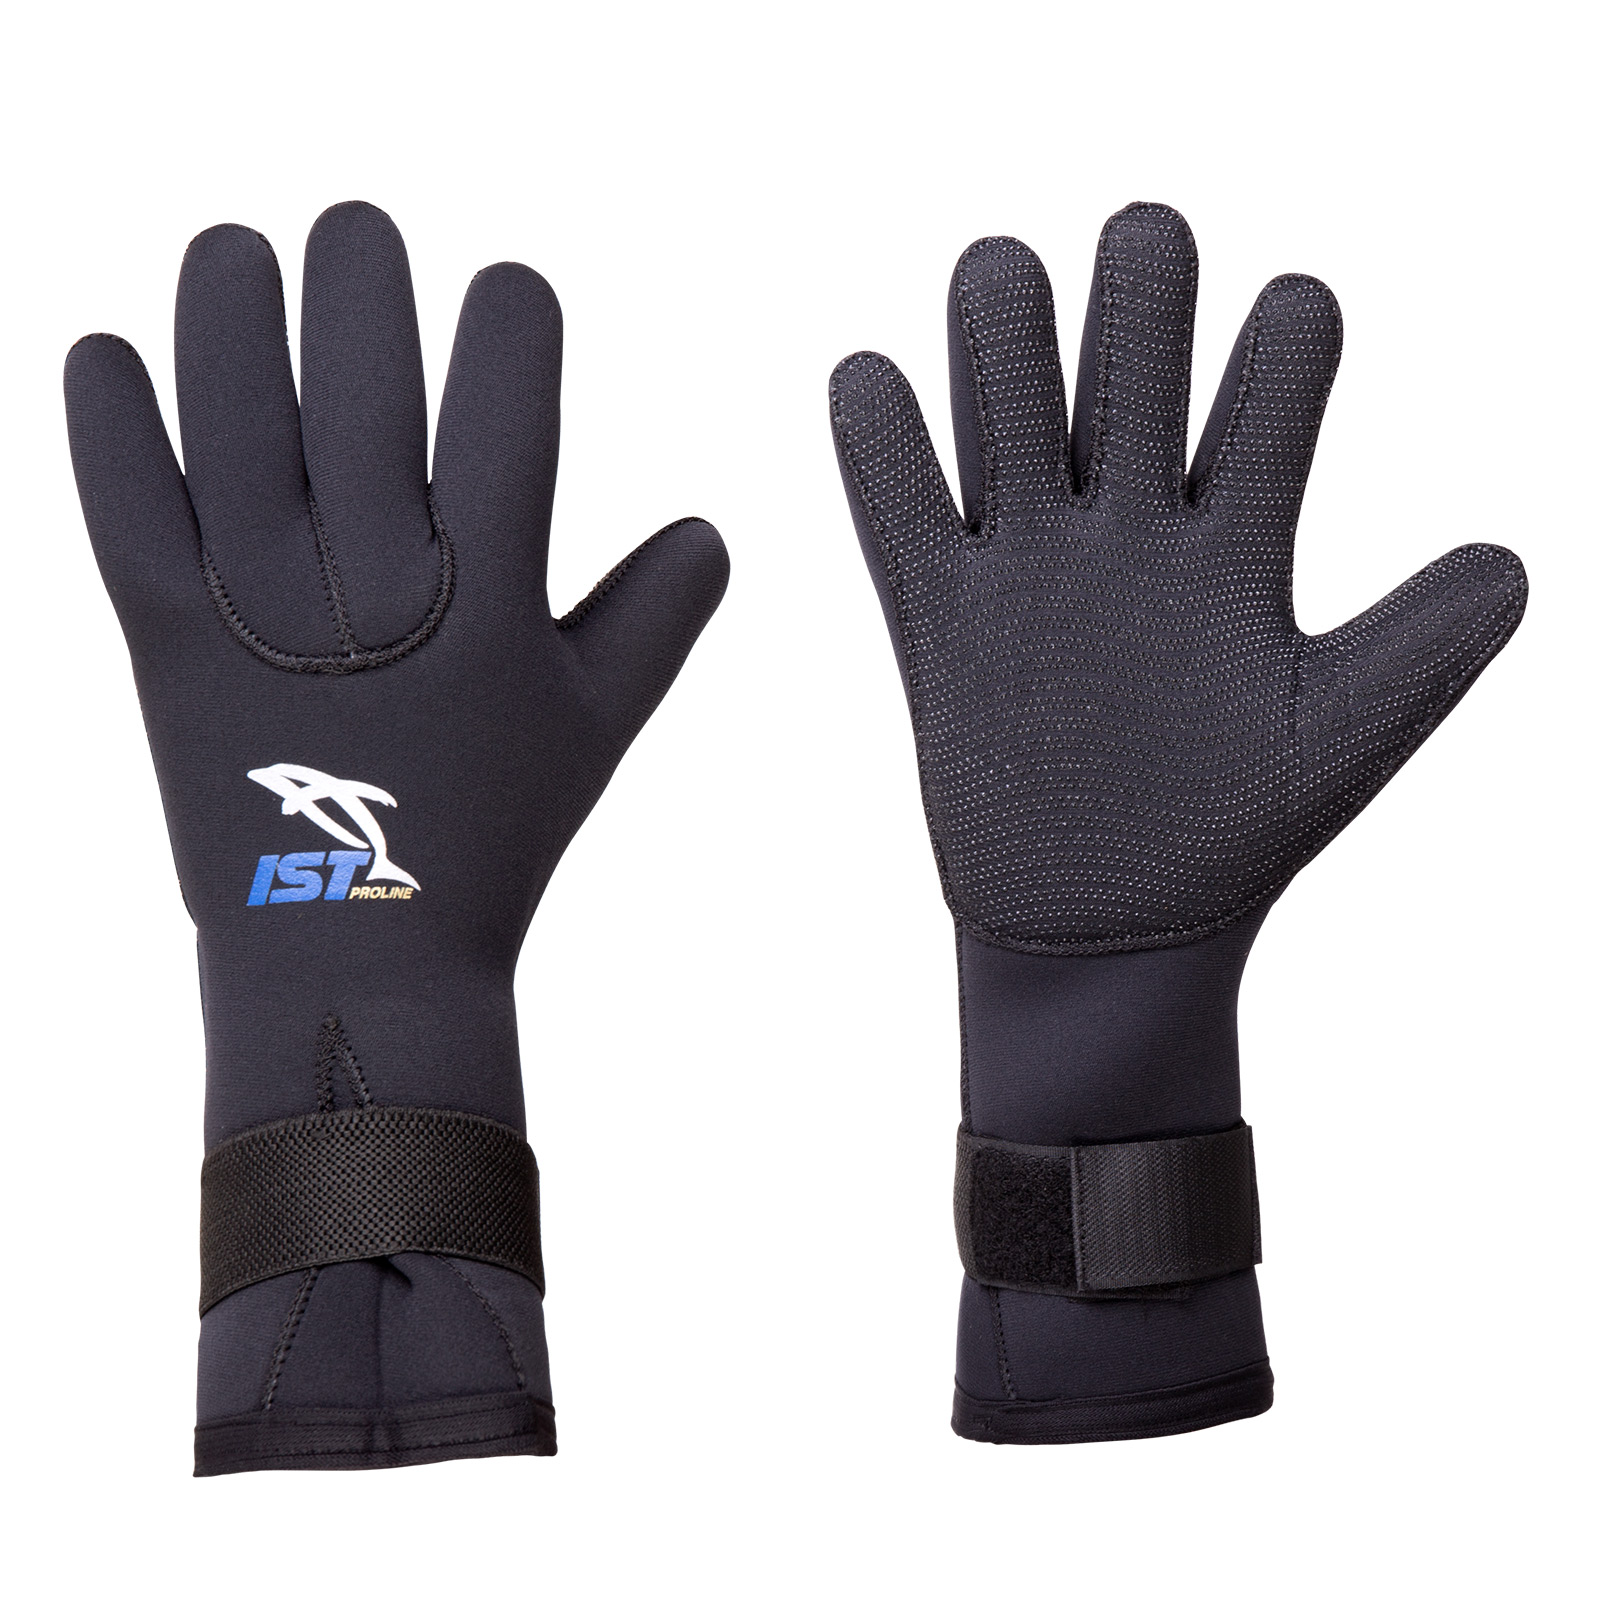 5mm Nylon II Neoprene Gloves